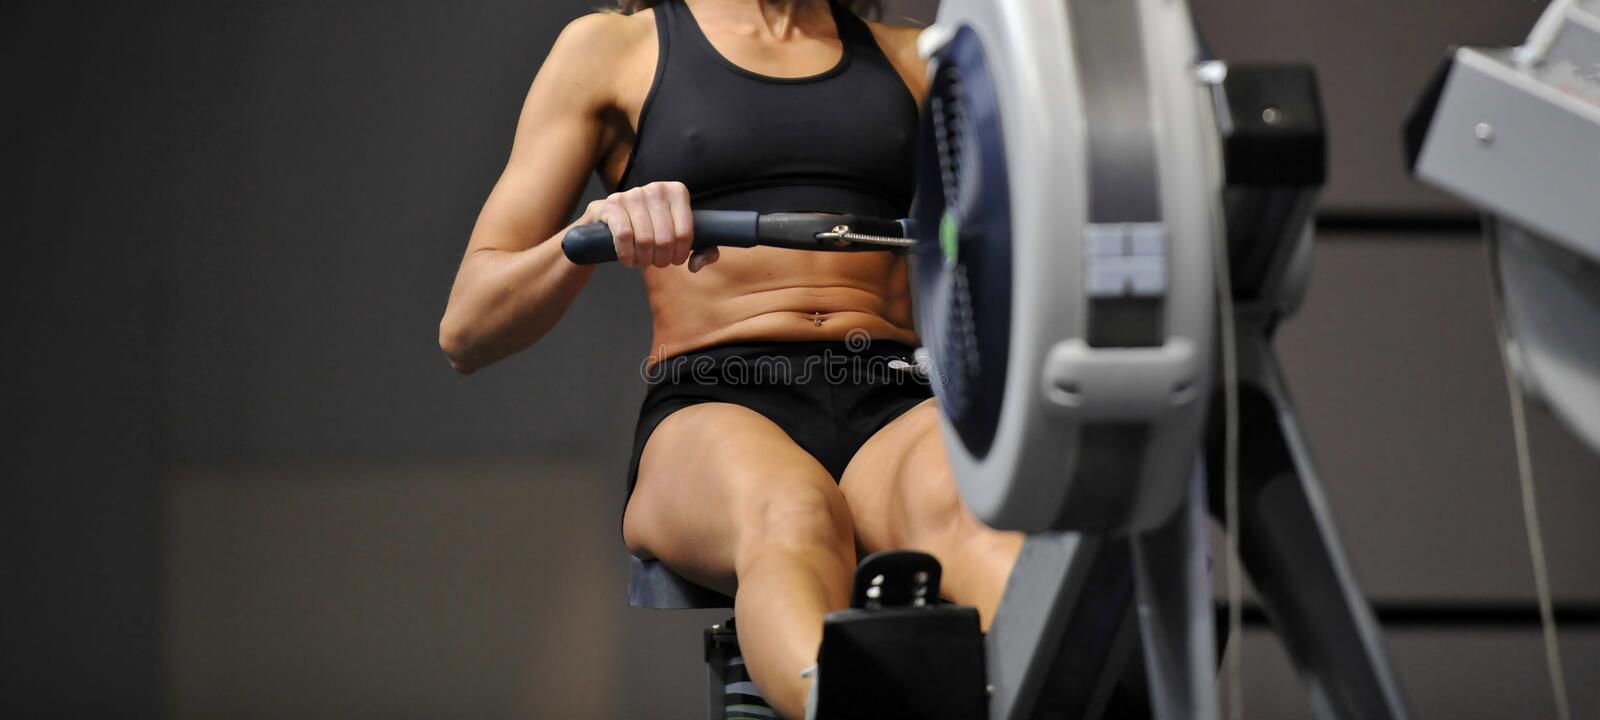 Powerful attractive muscular woman CrossFit trainer do workout on indoor rower at the gym.  royalty free stock photo